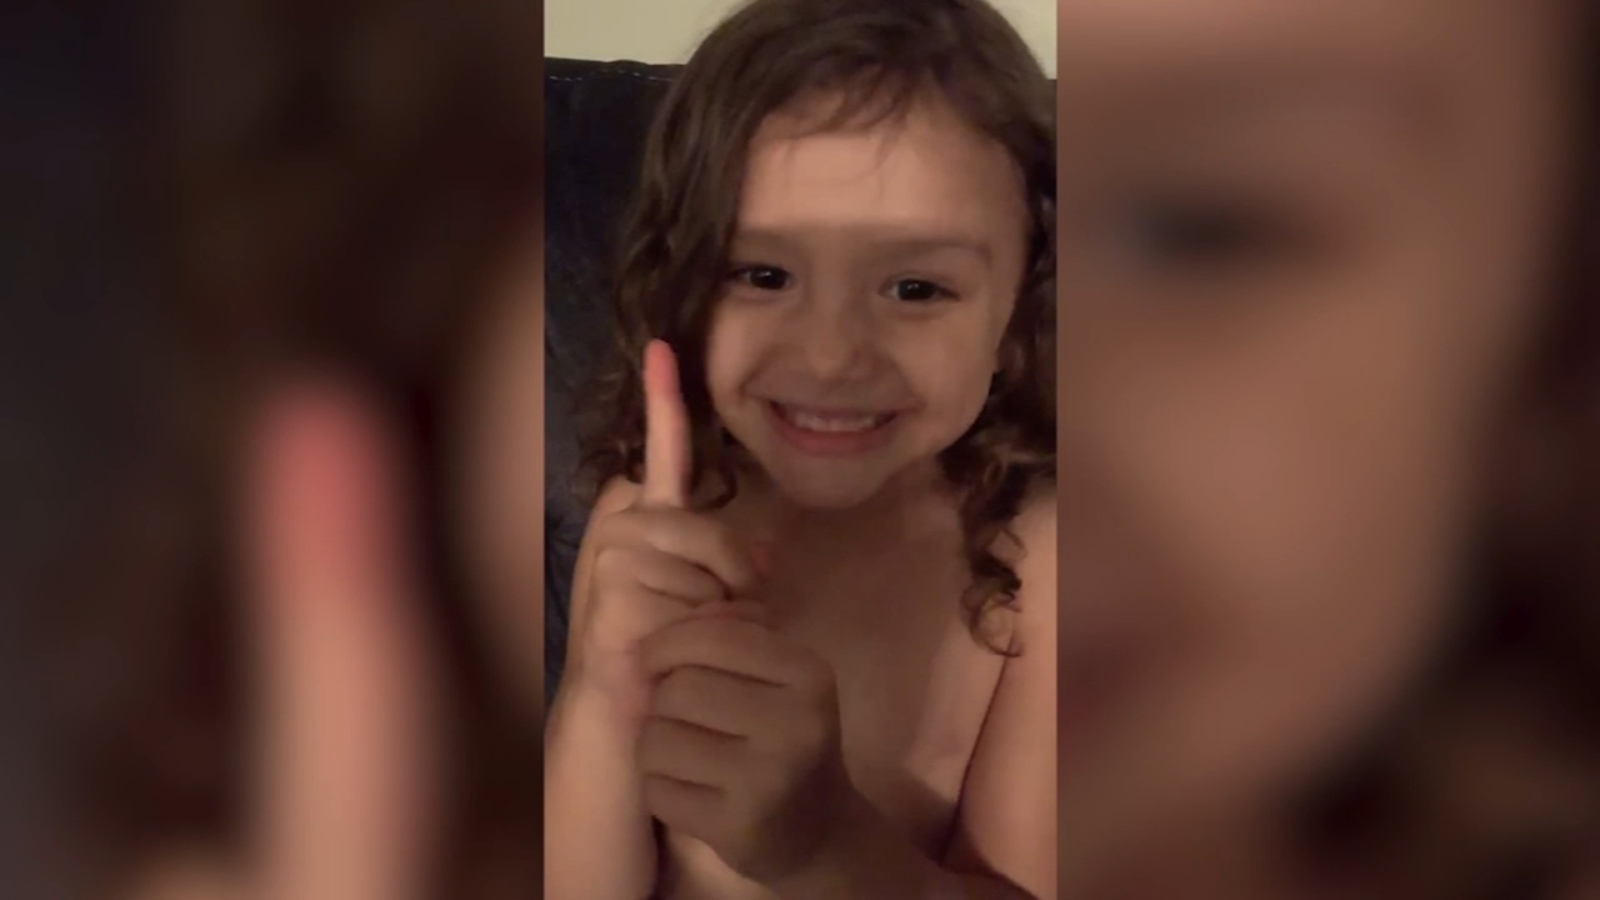 5-year-old girl passes away two weeks after being found unconscious in bathtub - ABC30 Fresno